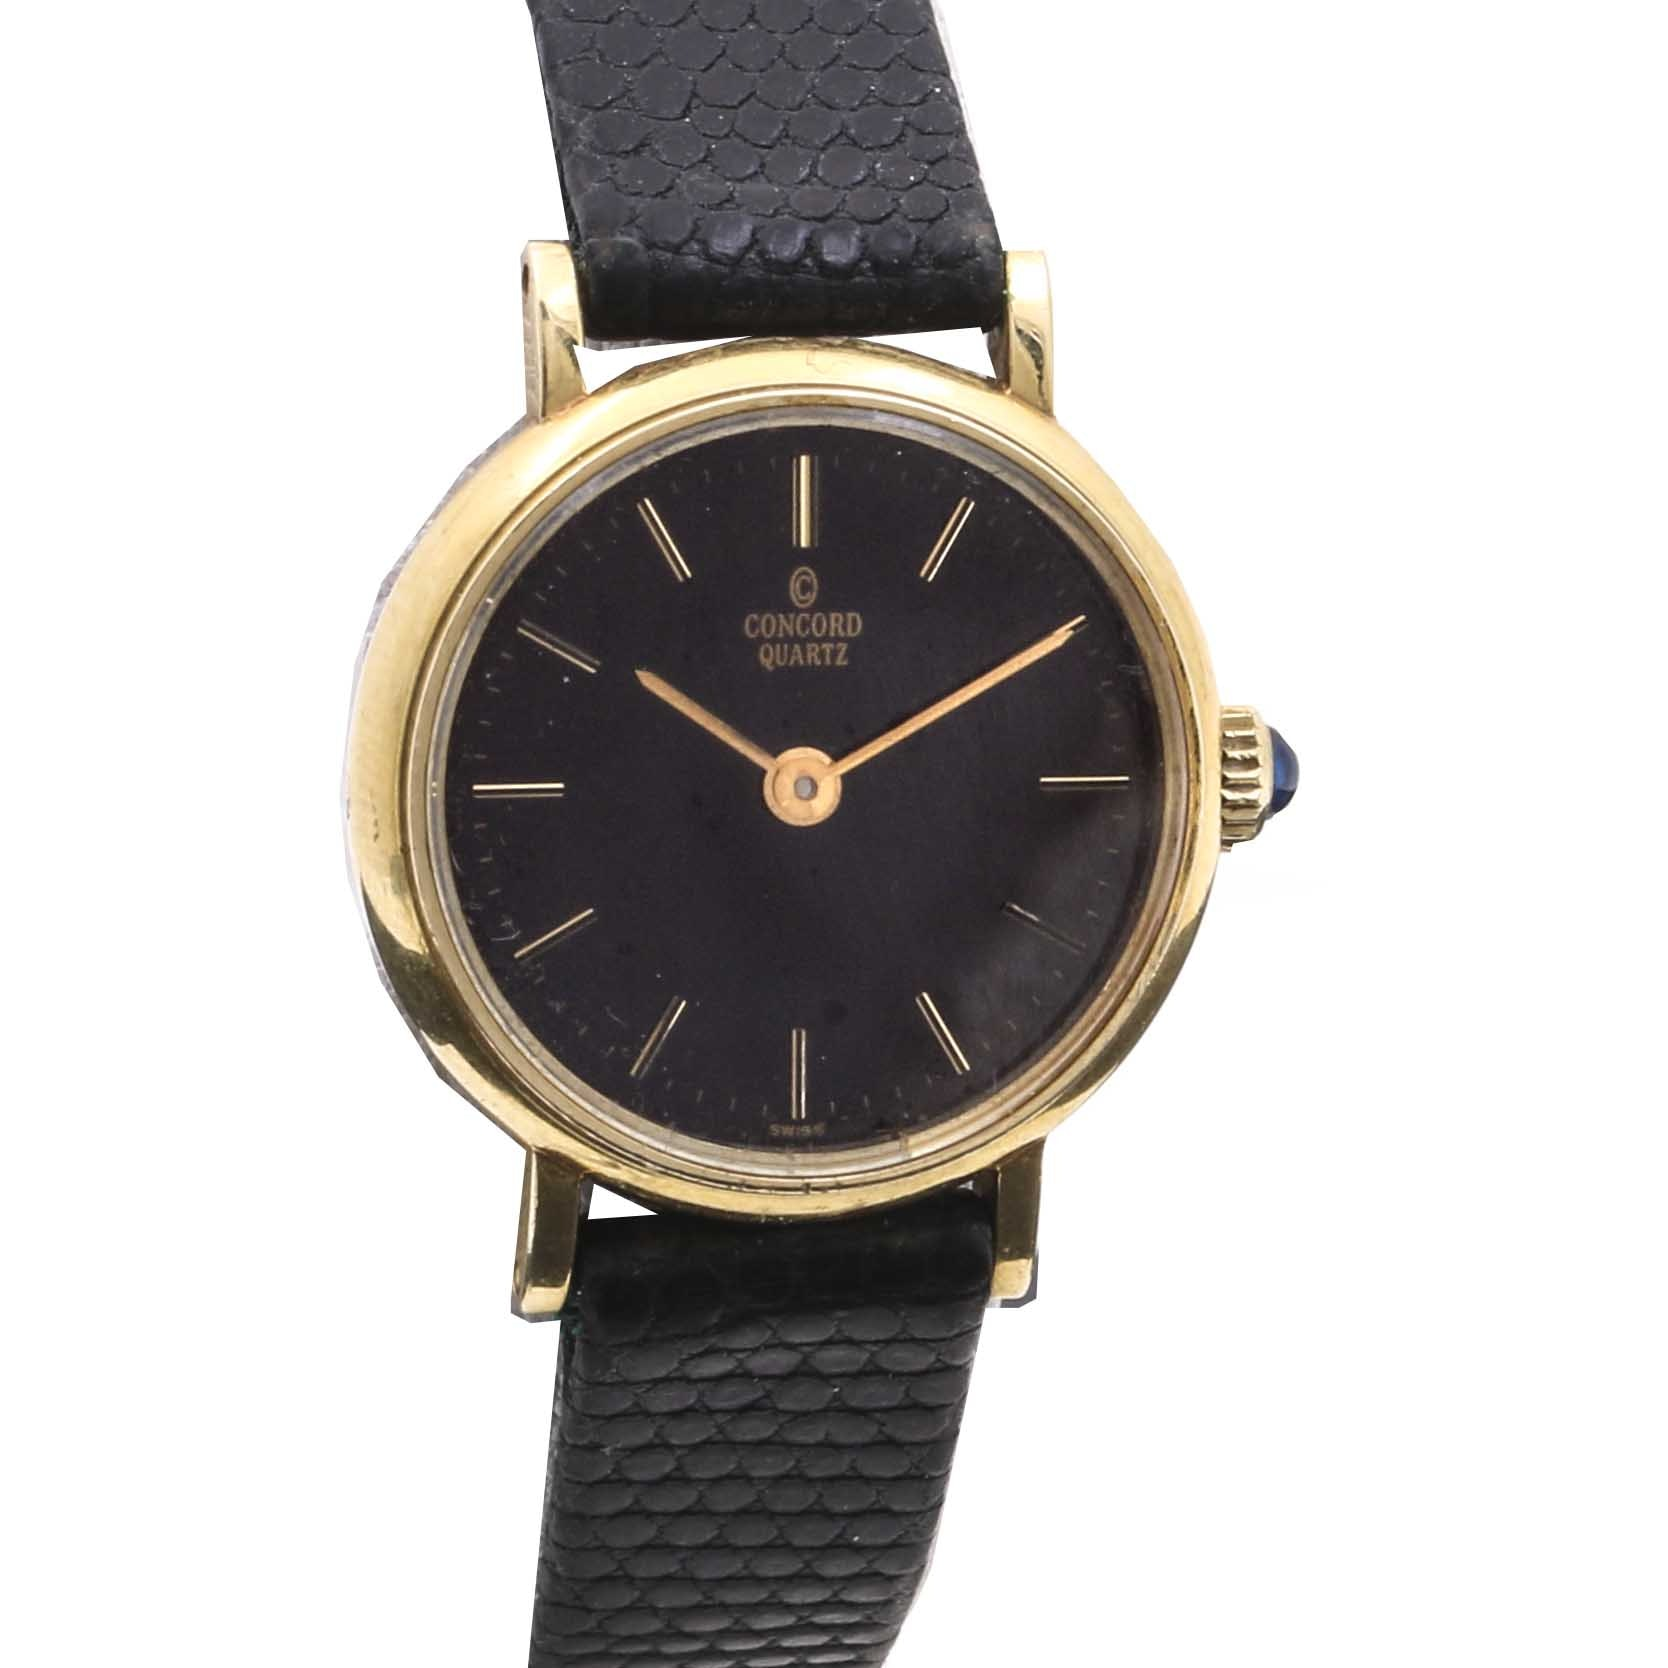 Concord 14K Yellow Gold Black Leather Wristwatch